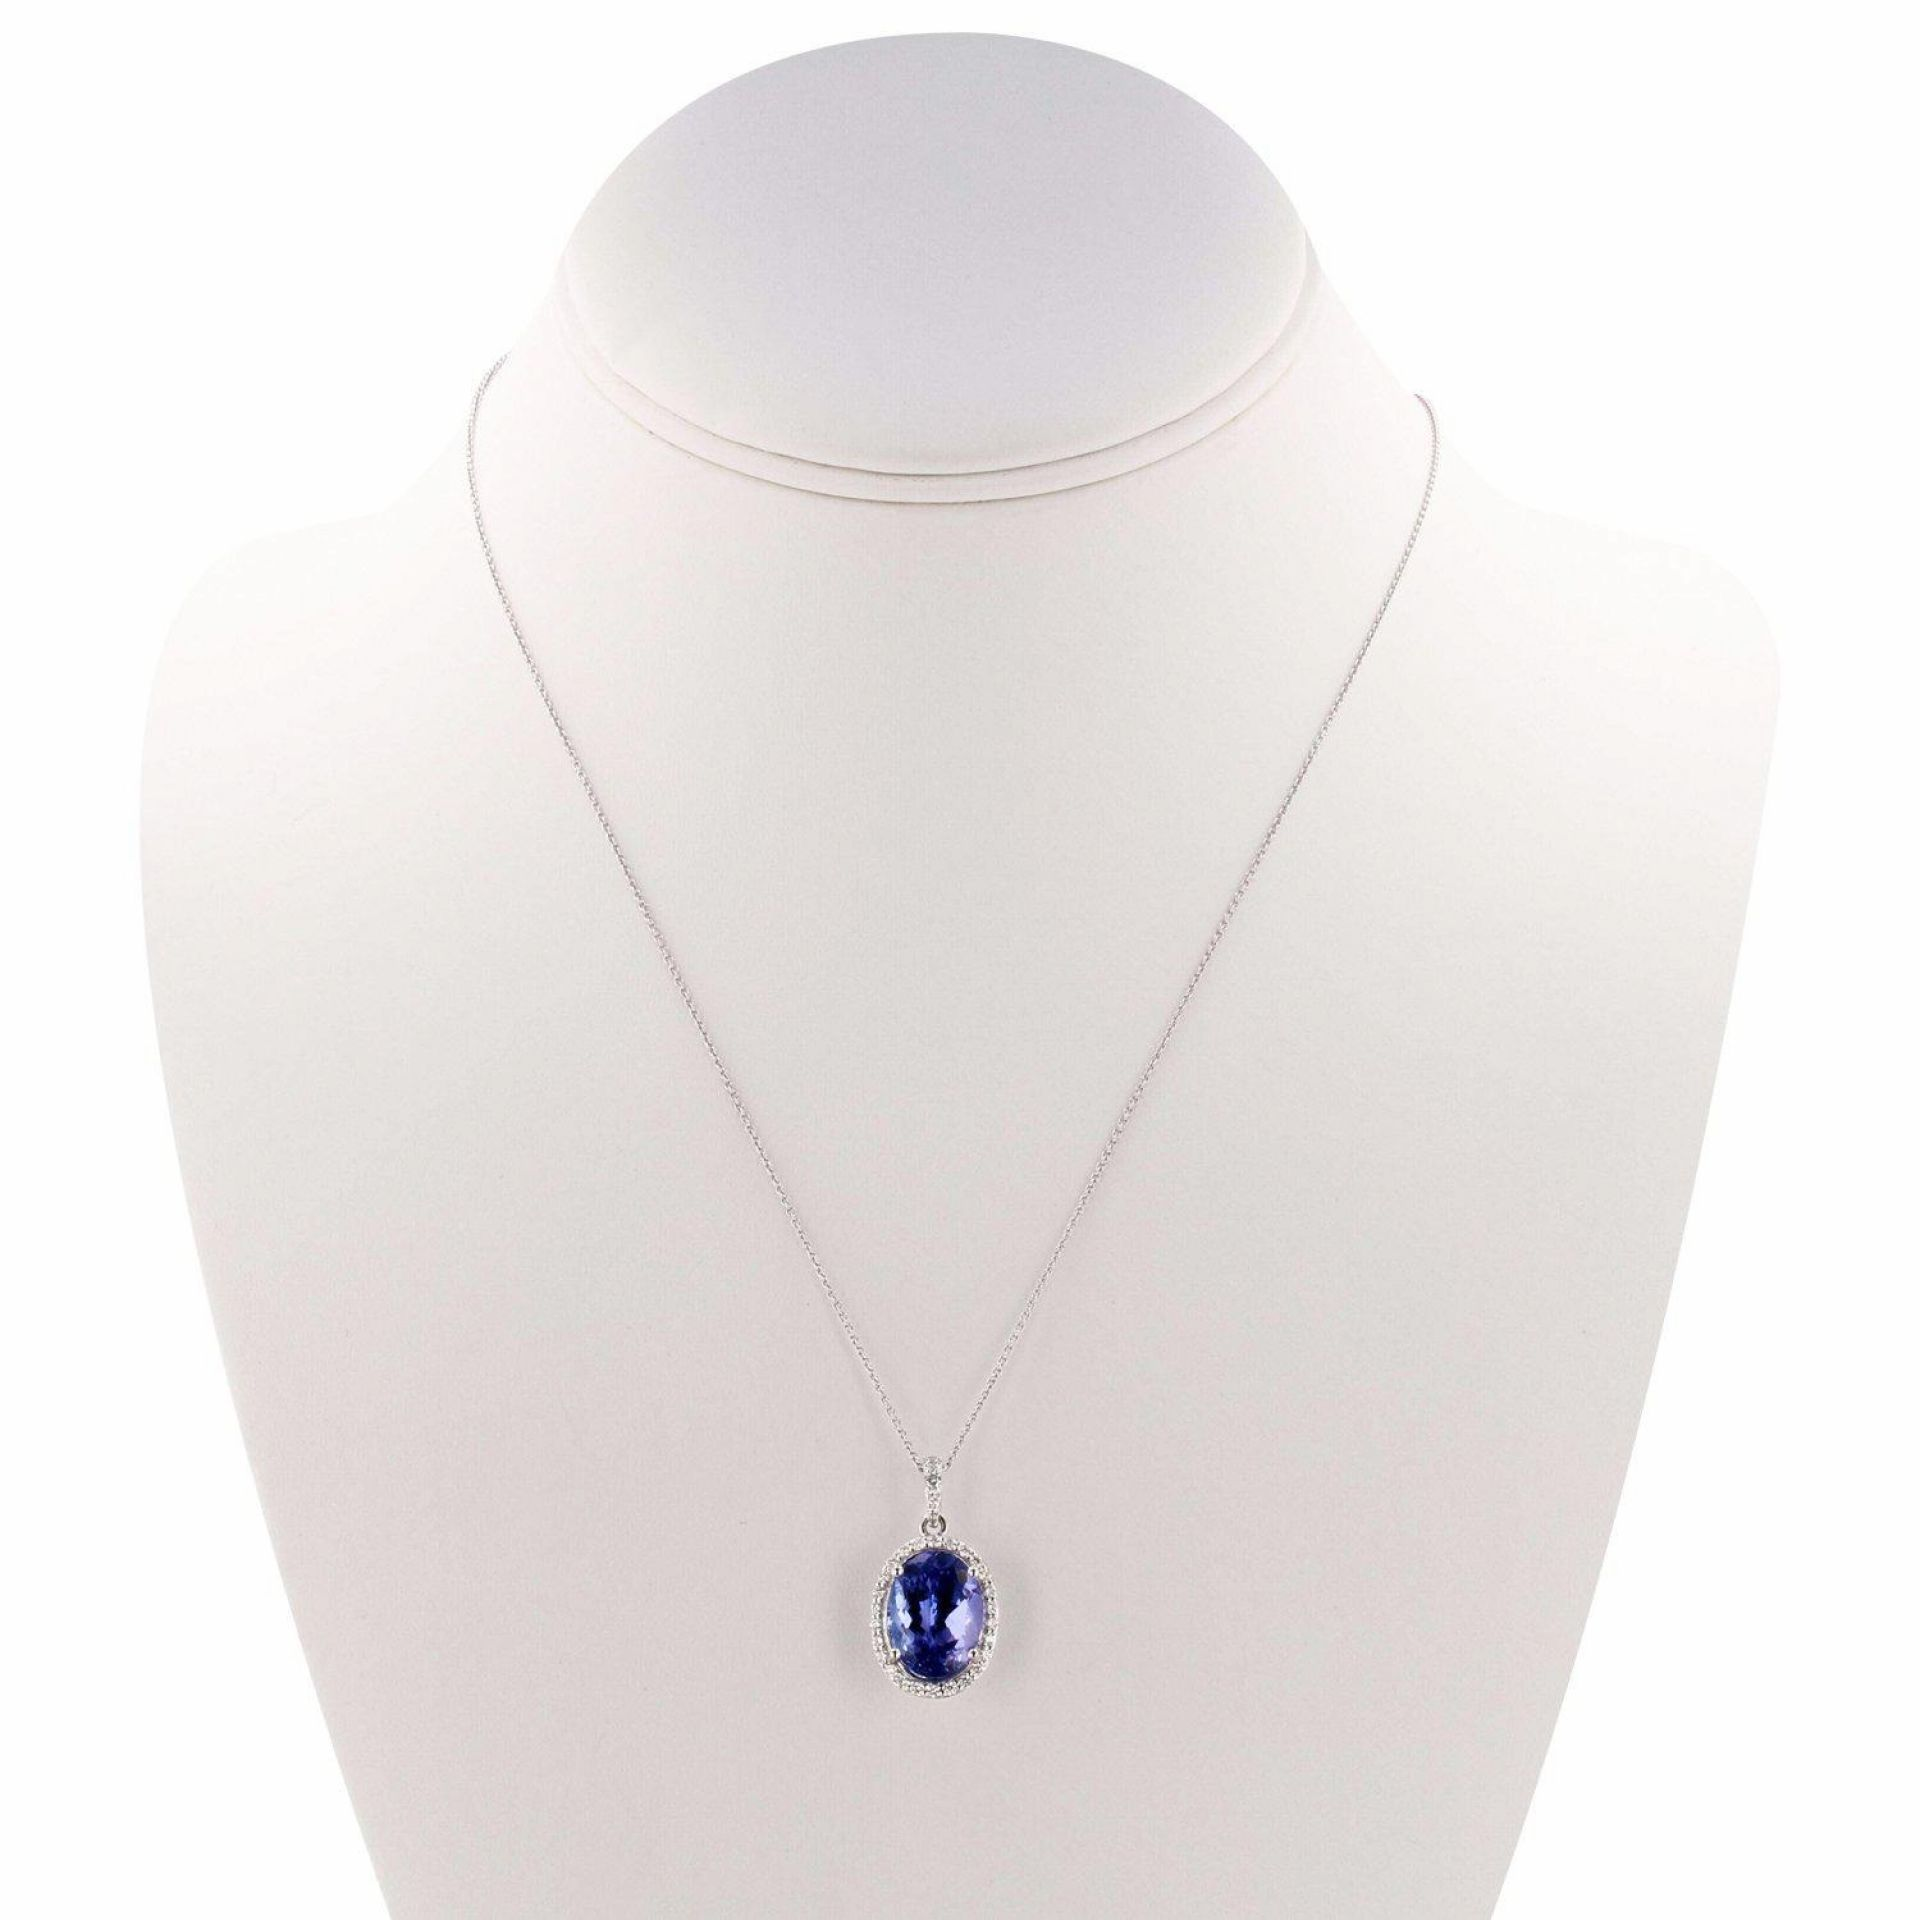 7.70ct Tanzanite and 0.37ctw Diamond Platinum Pendant/Necklace (GIA CERTIFIED)